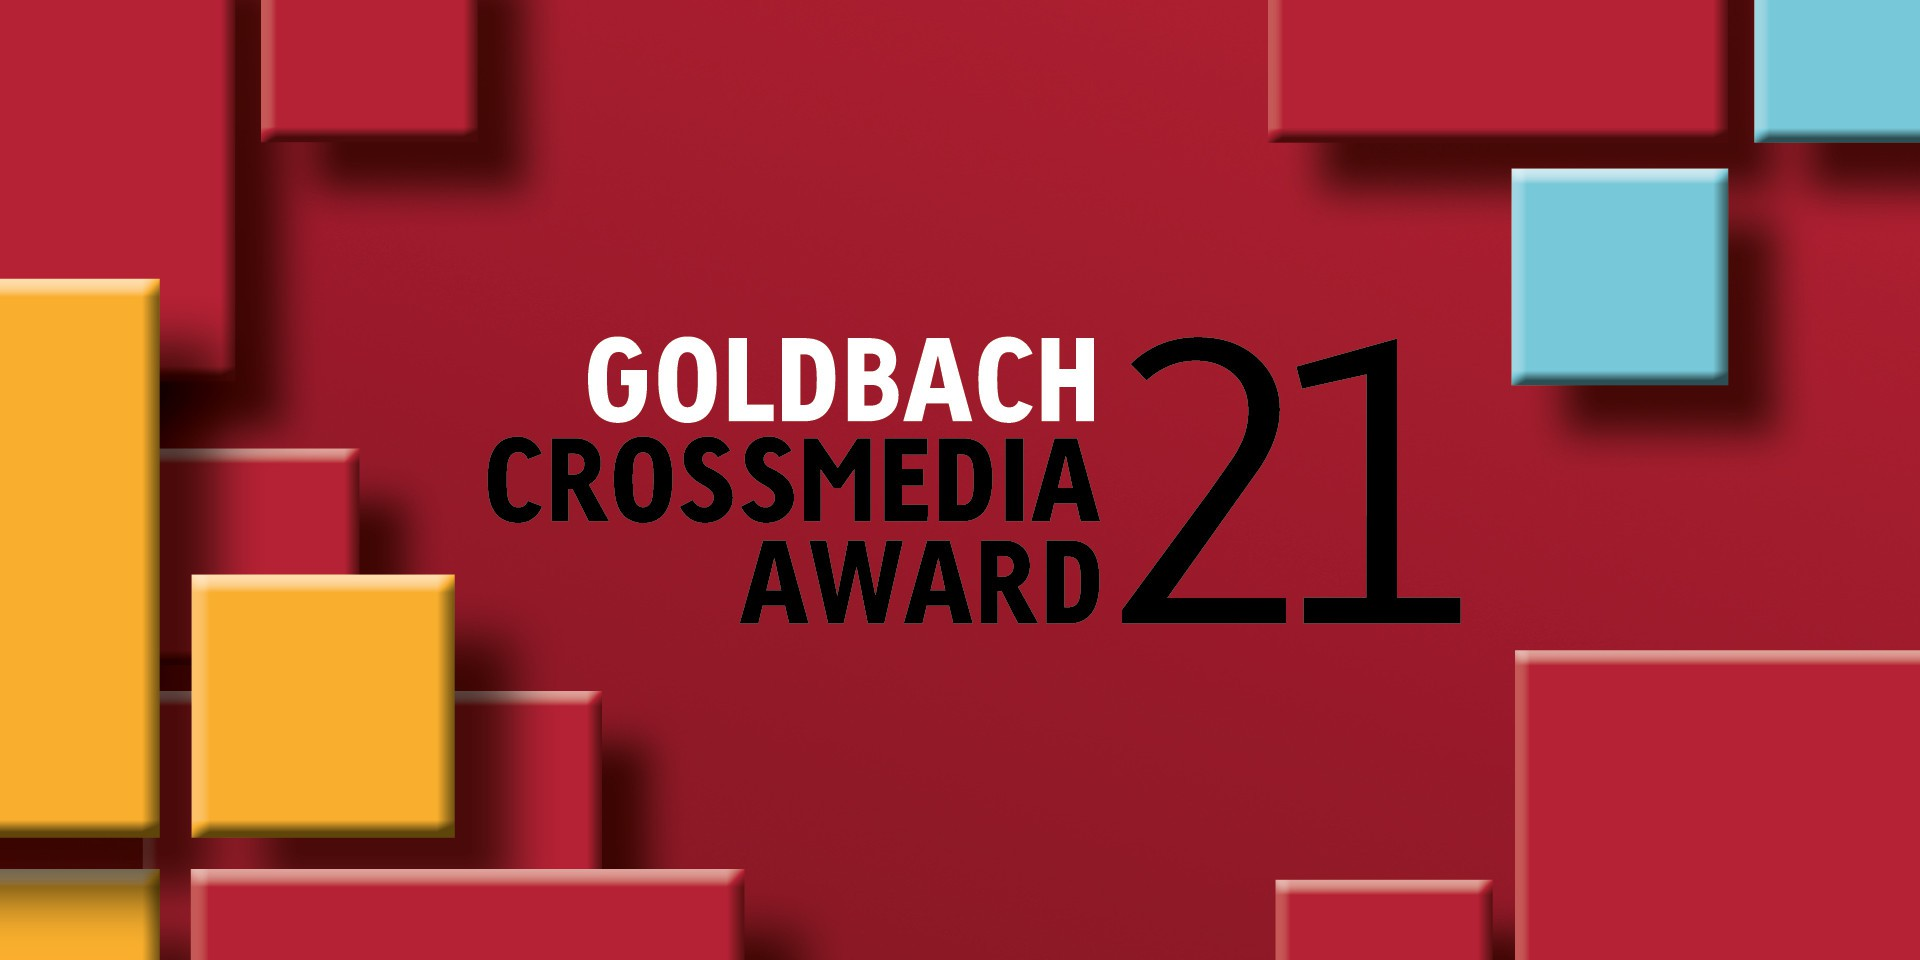 crossmediaaward-2021-visual.jpg